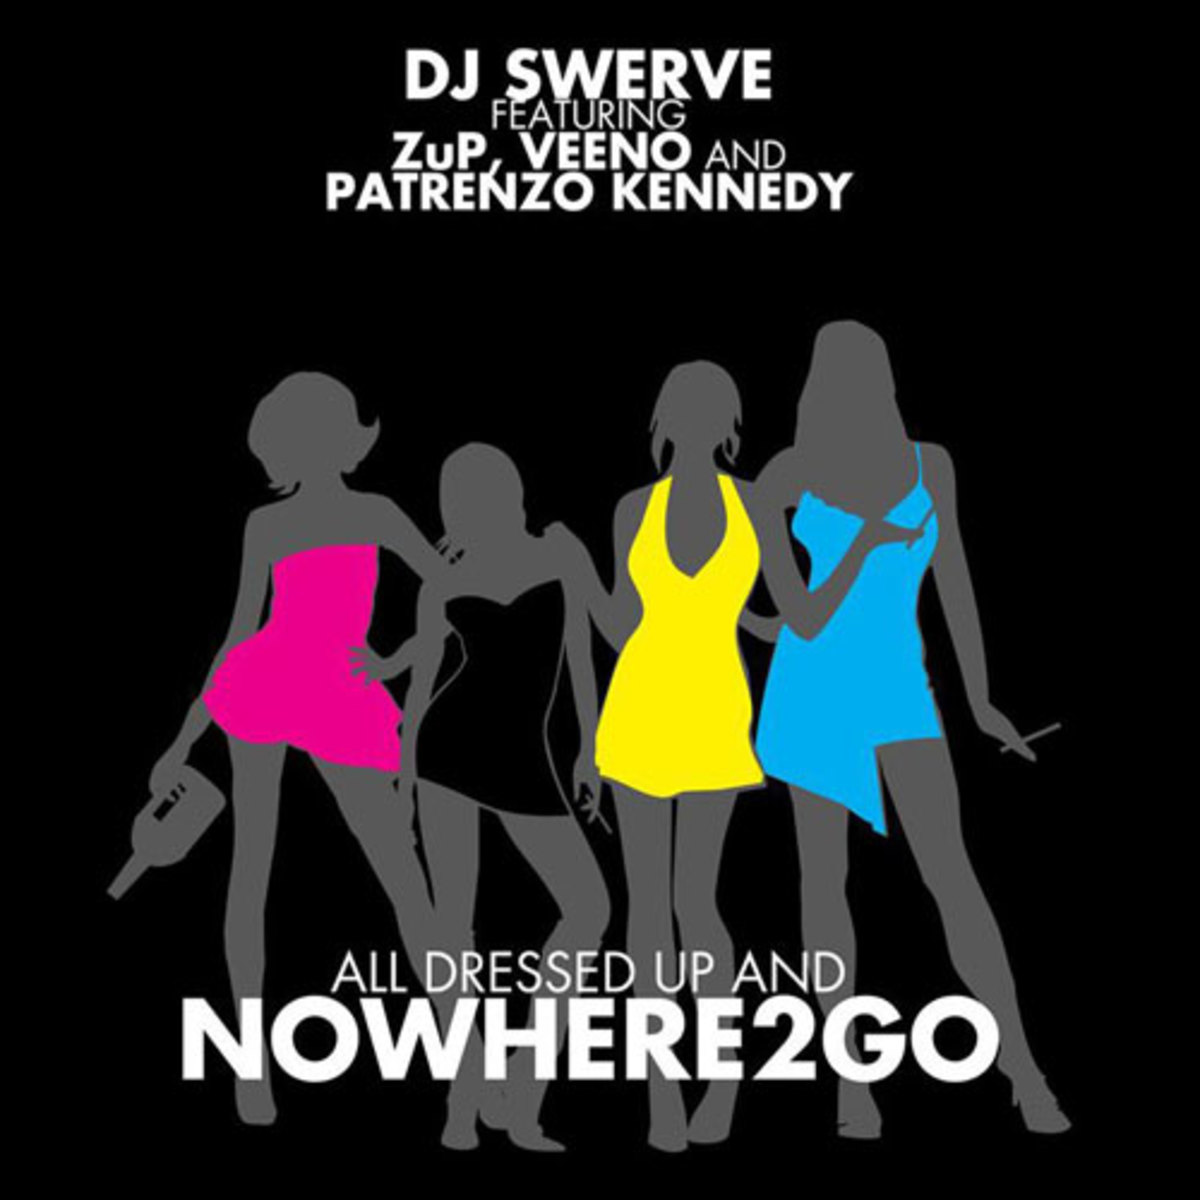 djswerve-nowhere2go.jpg